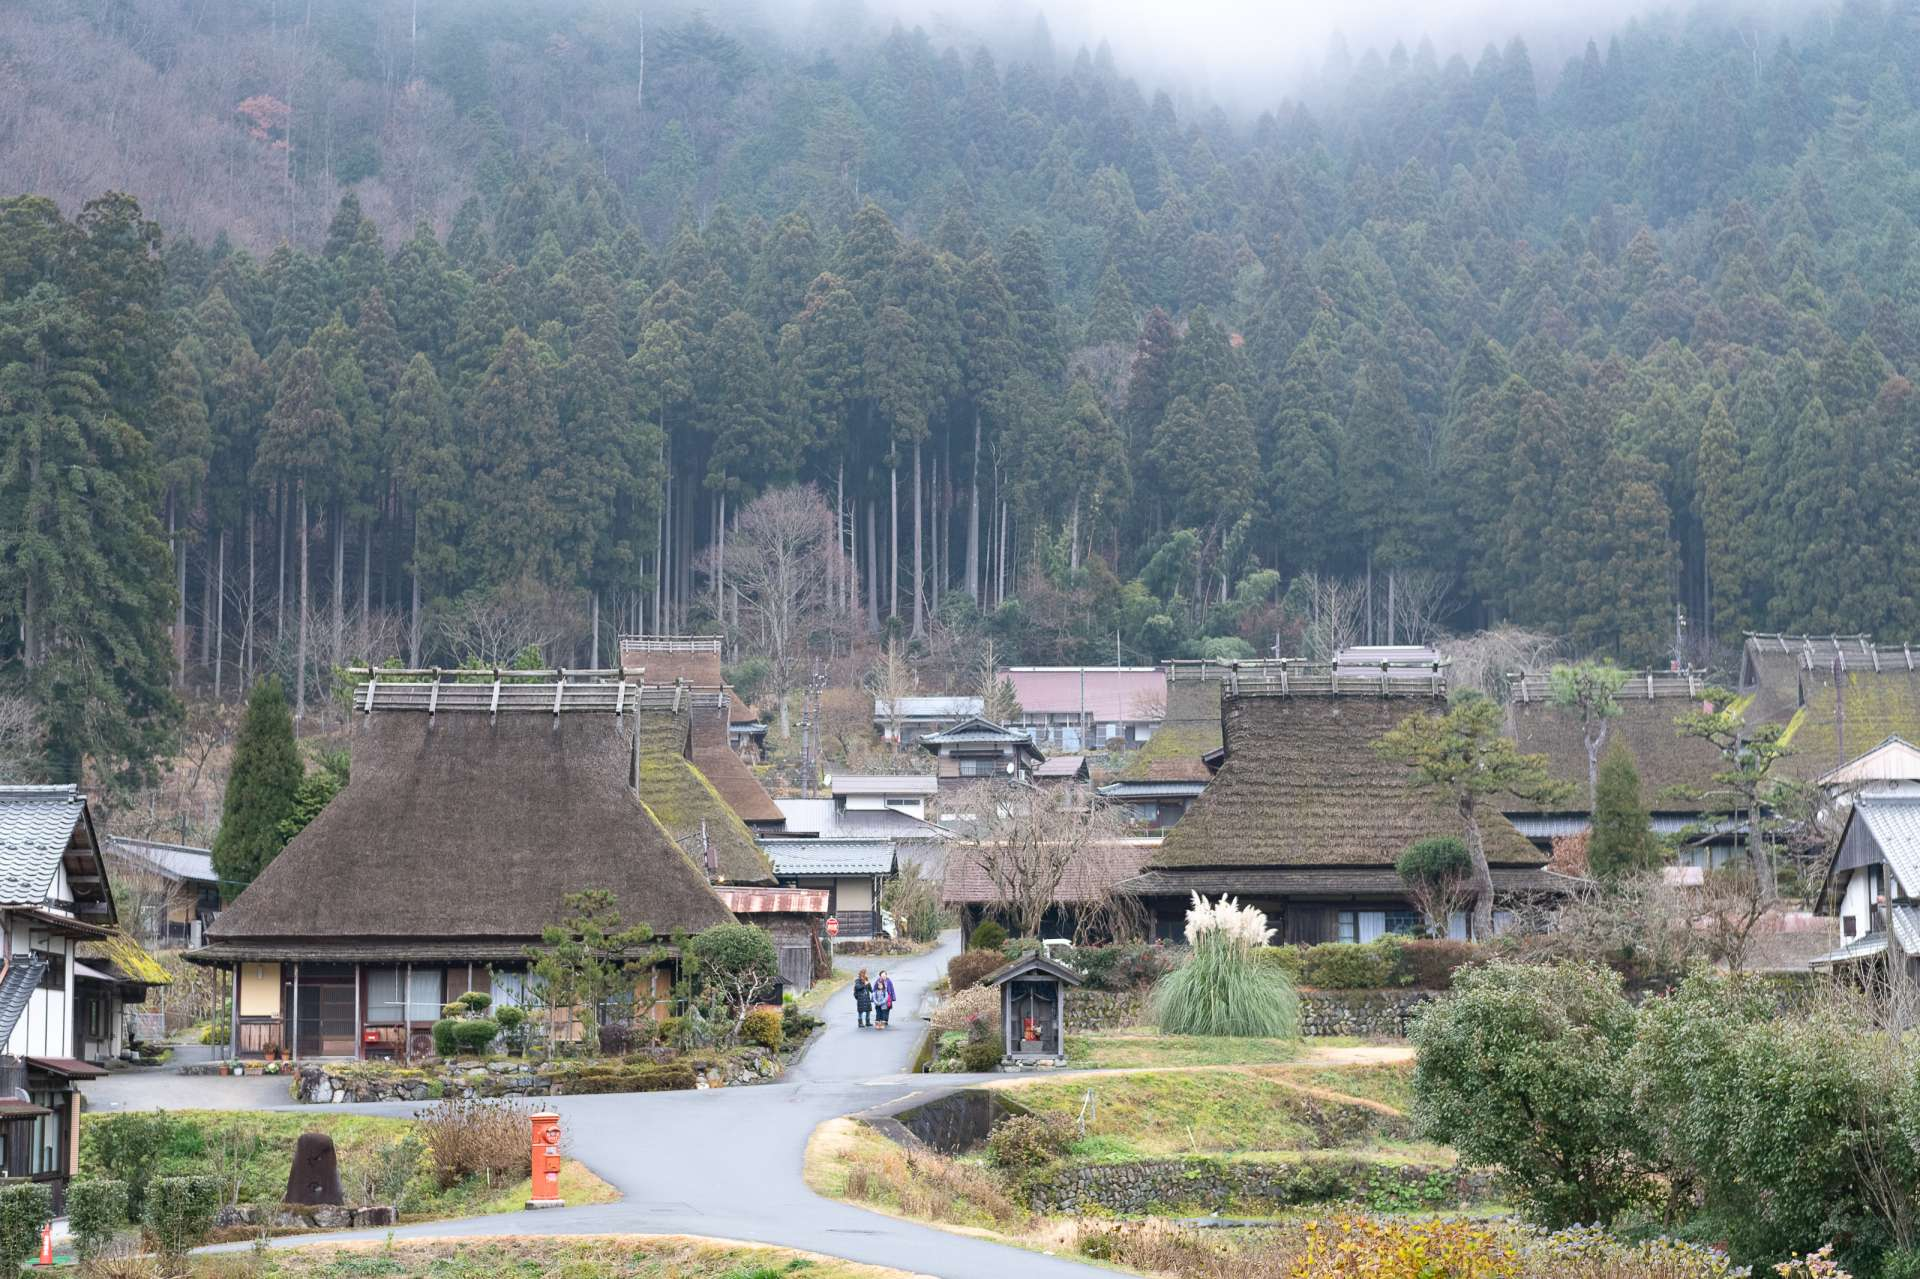 """""""Kayabuki no Sato"""" consists of 39 thatch roof houses (Chii district, Miyama). It was selected as a national important preservation district of historic buildings along with the surrounding rice paddies and mountain forests in 1993."""